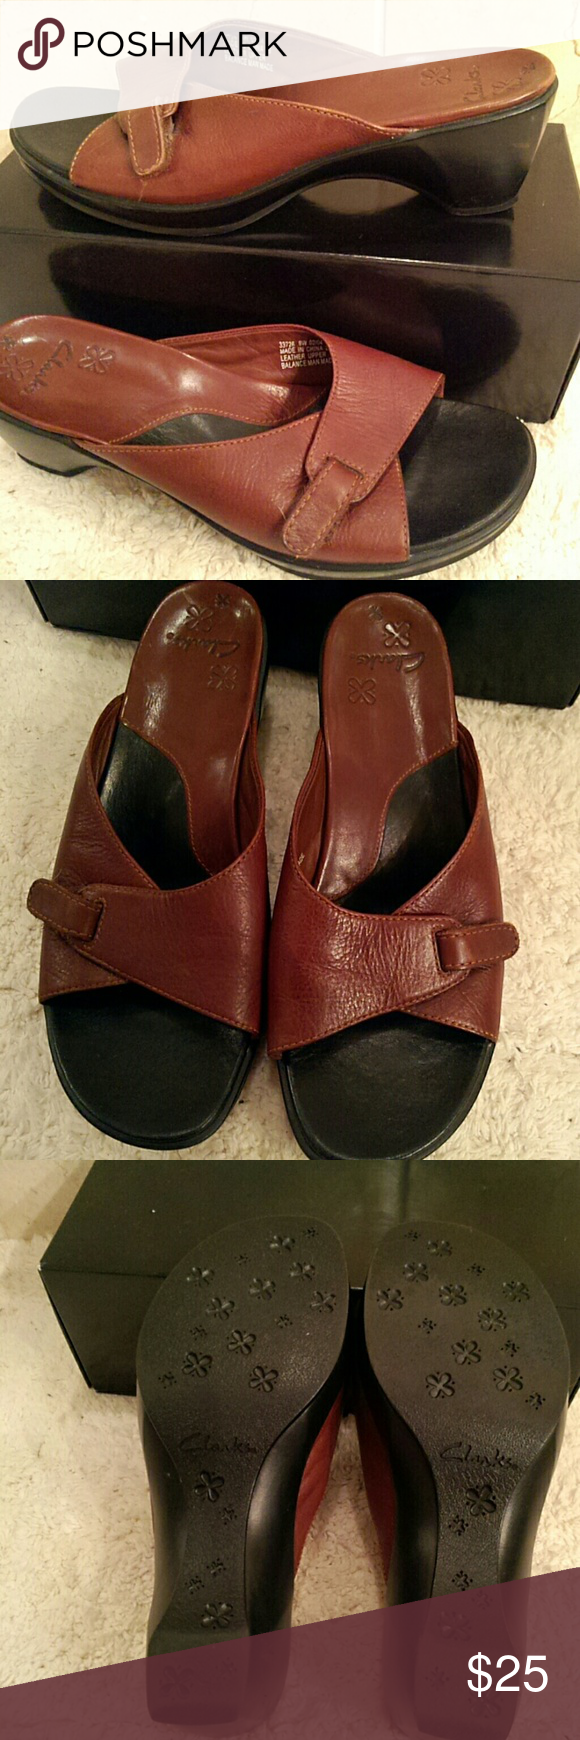 """Clarks soft brown leather sandals soft leather in a dark brown color; low heel 2.25""""; front panel has velcro for slight adjustment of width; Clarks brand; size 8W  (T-11) Clarks Shoes Sandals"""